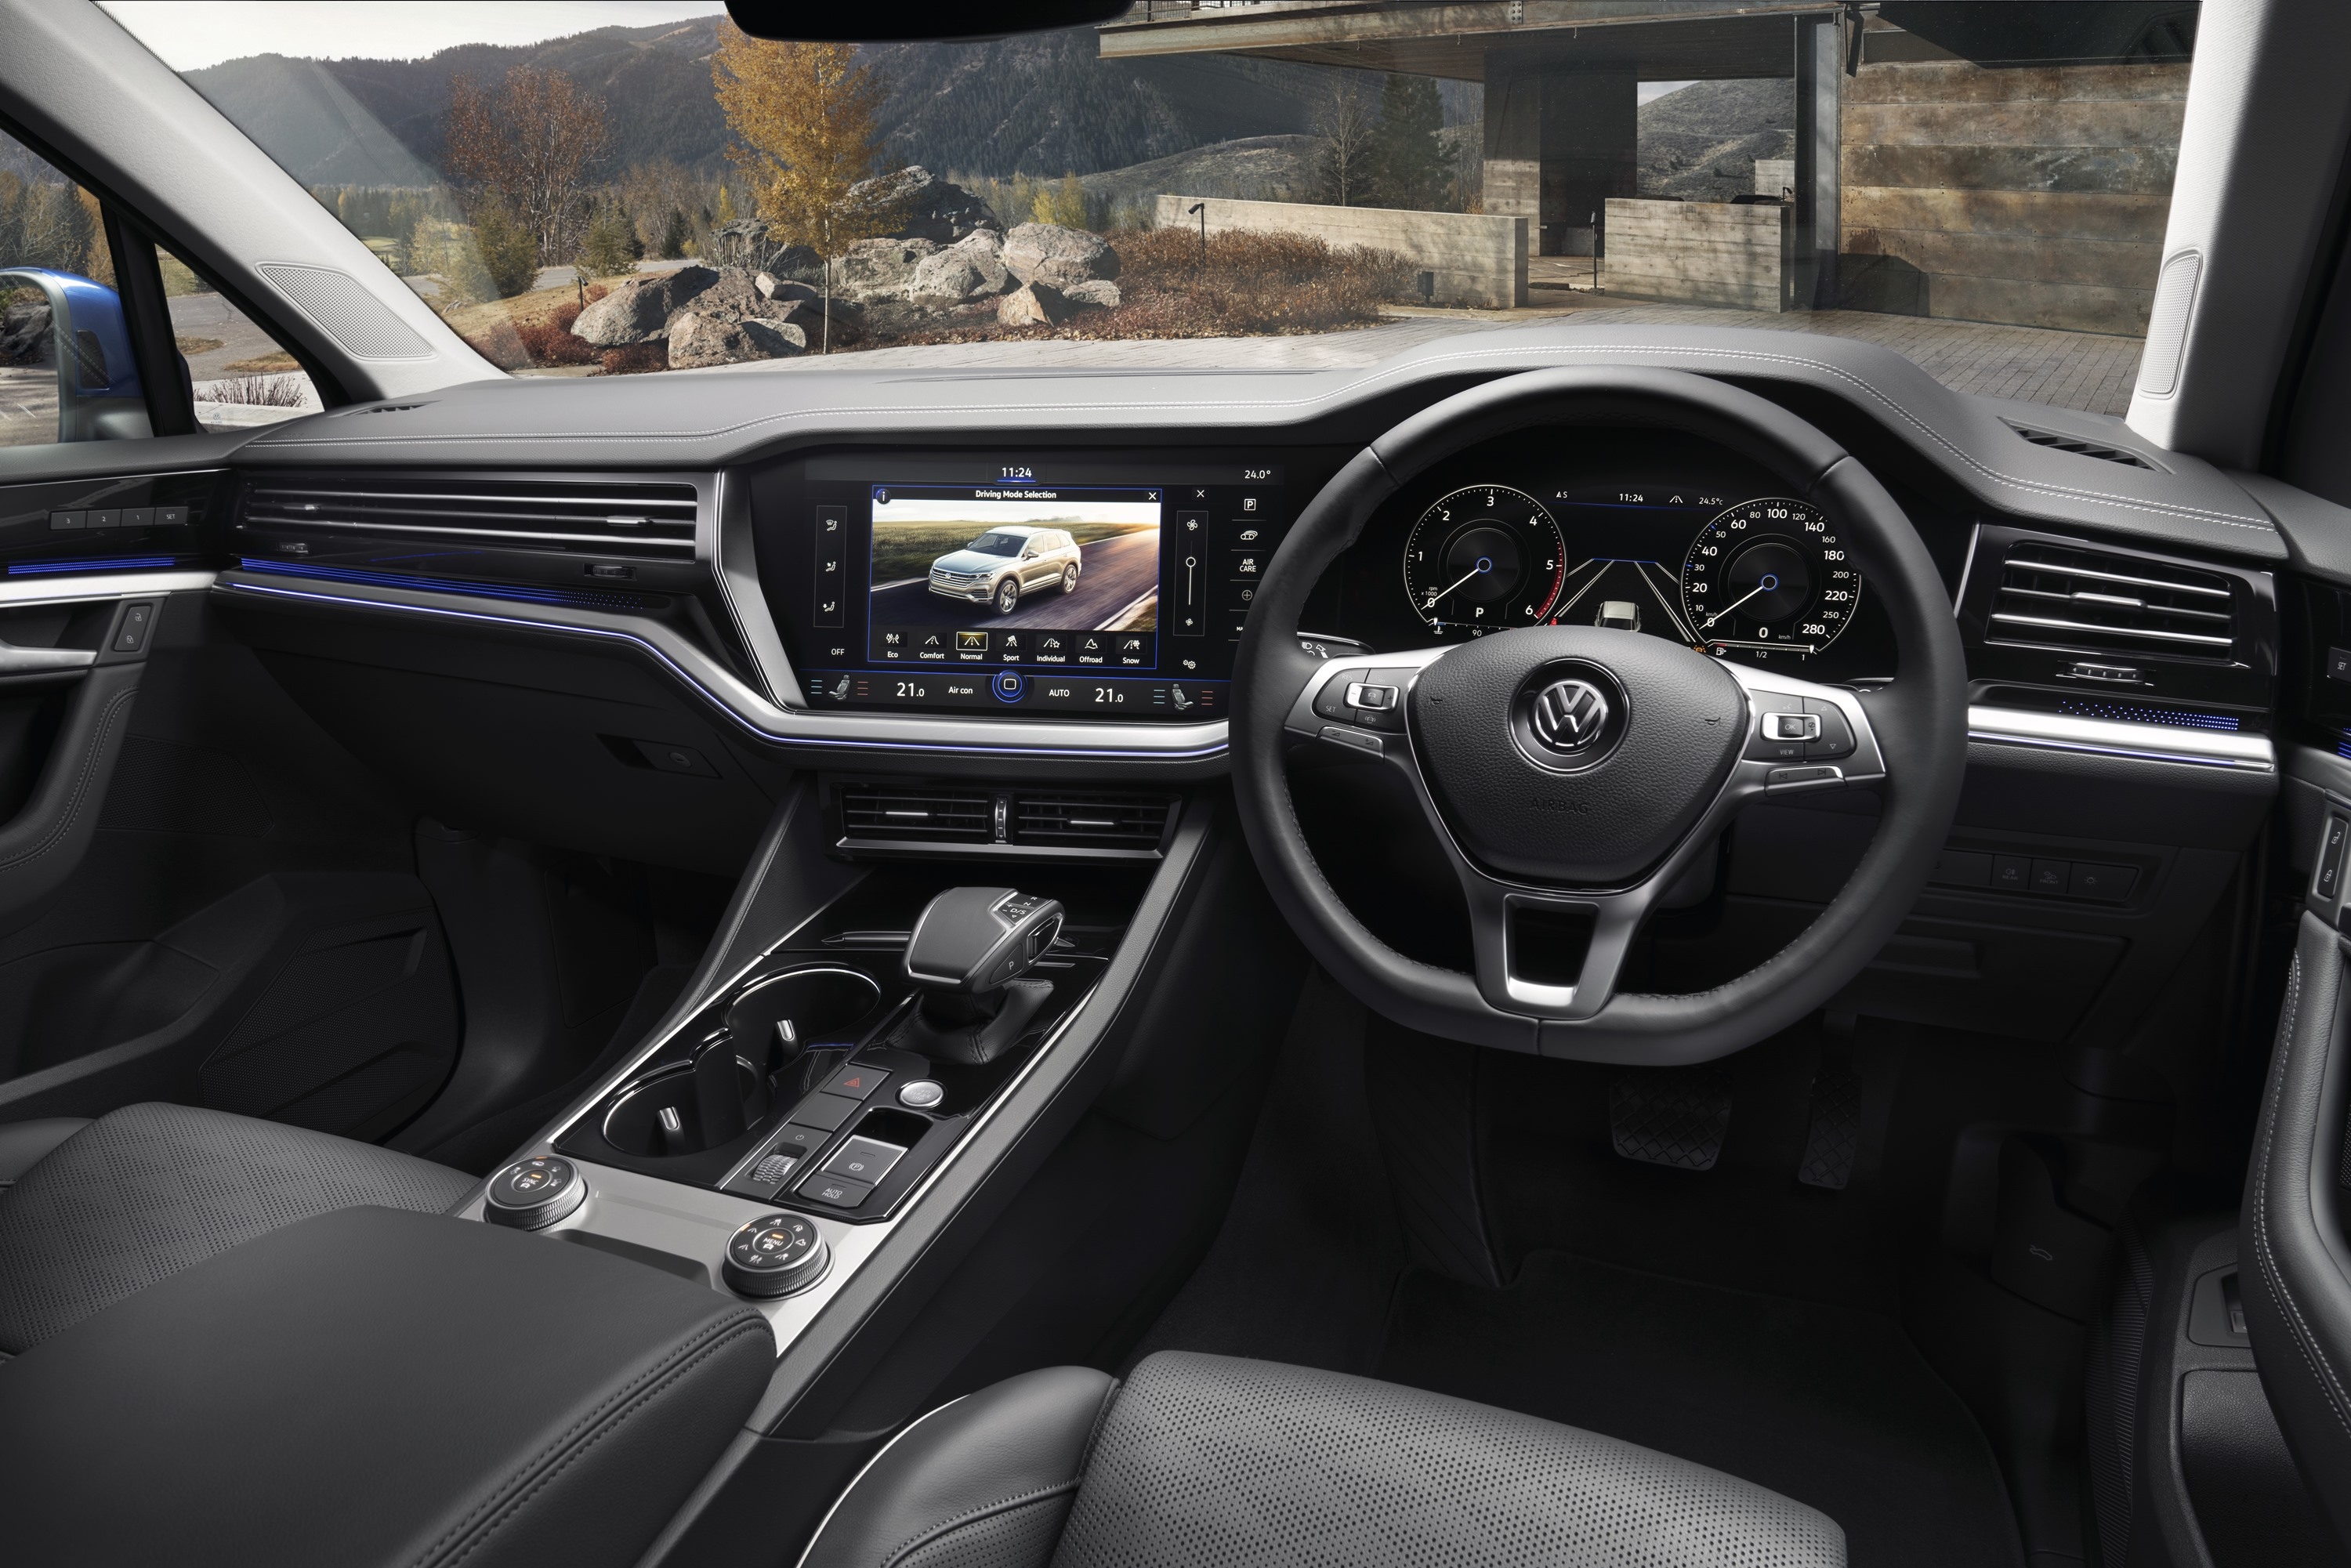 2019 VW Touareg Launch Edition 3 interior 1